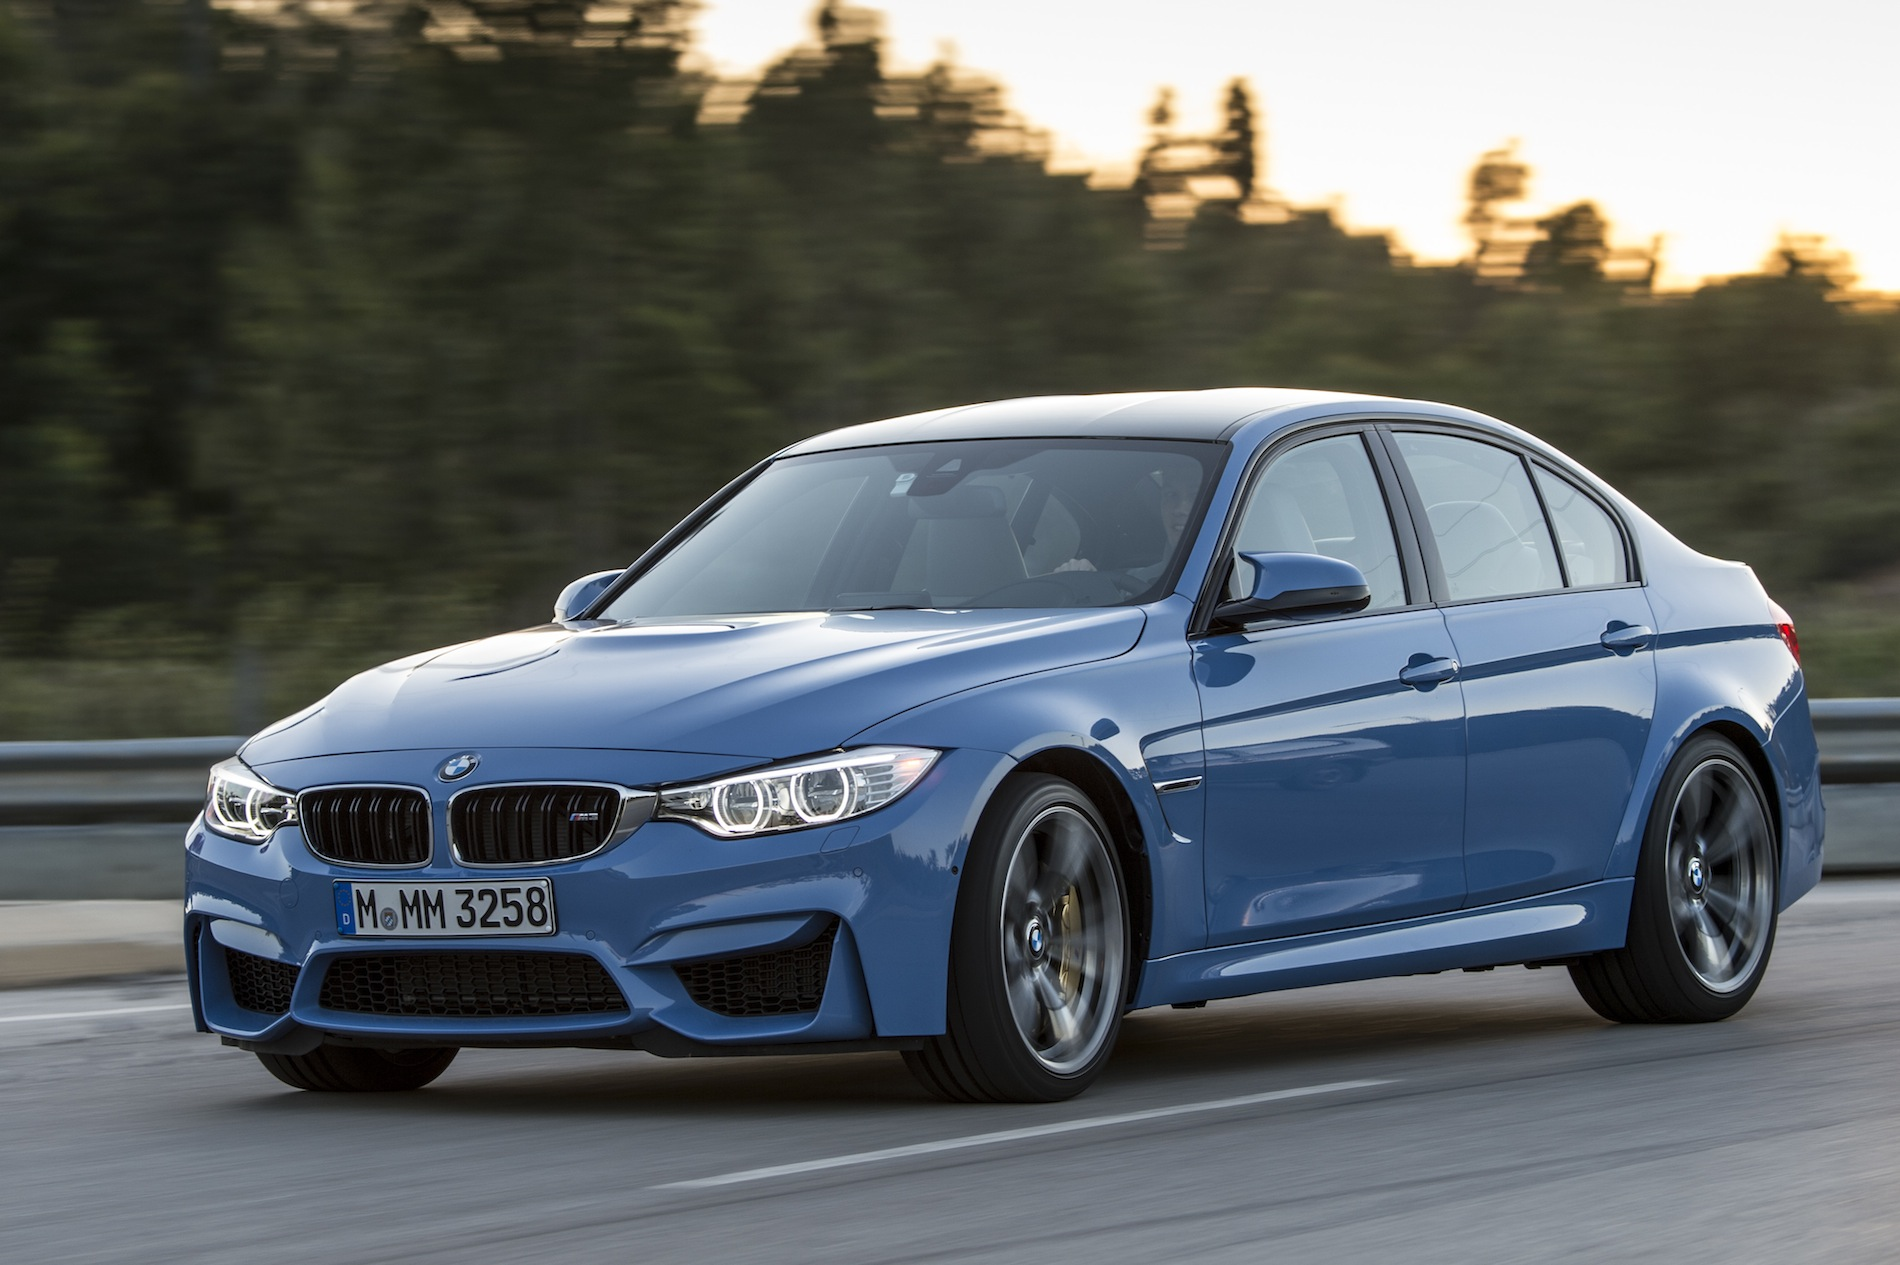 2015 bmw m3 sedan f80 official specs wallpapers videos photos info. Black Bedroom Furniture Sets. Home Design Ideas